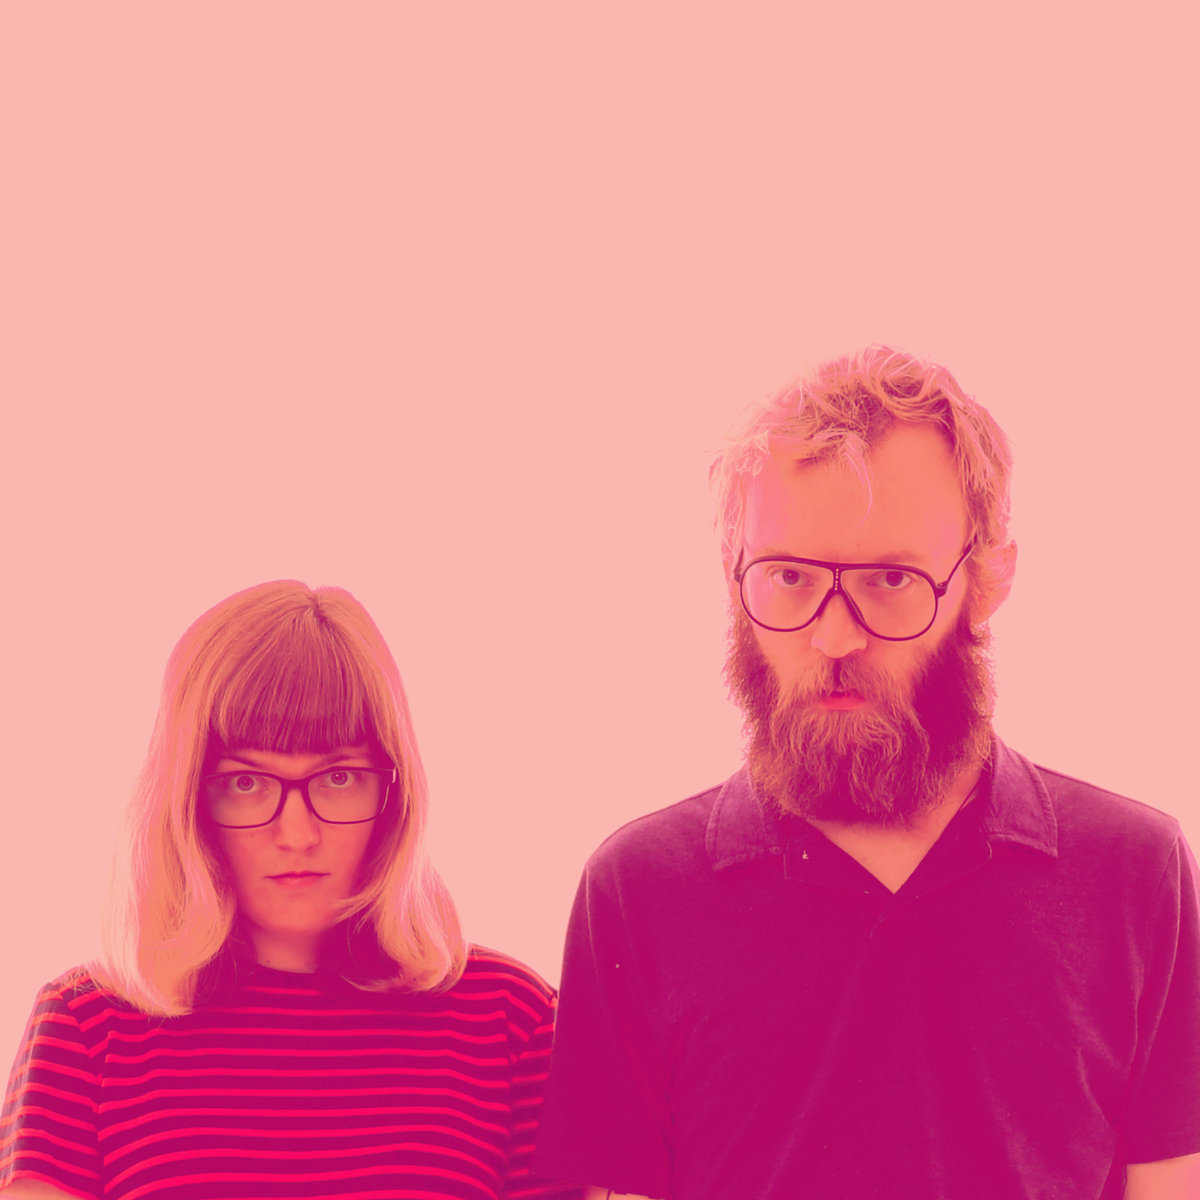 """""""Nice Legs are a mix of several related indie-pop genres. Dream pop. c86. experimental. Bedroom pop. They pick up the best of all those and do something new with them. Very good."""